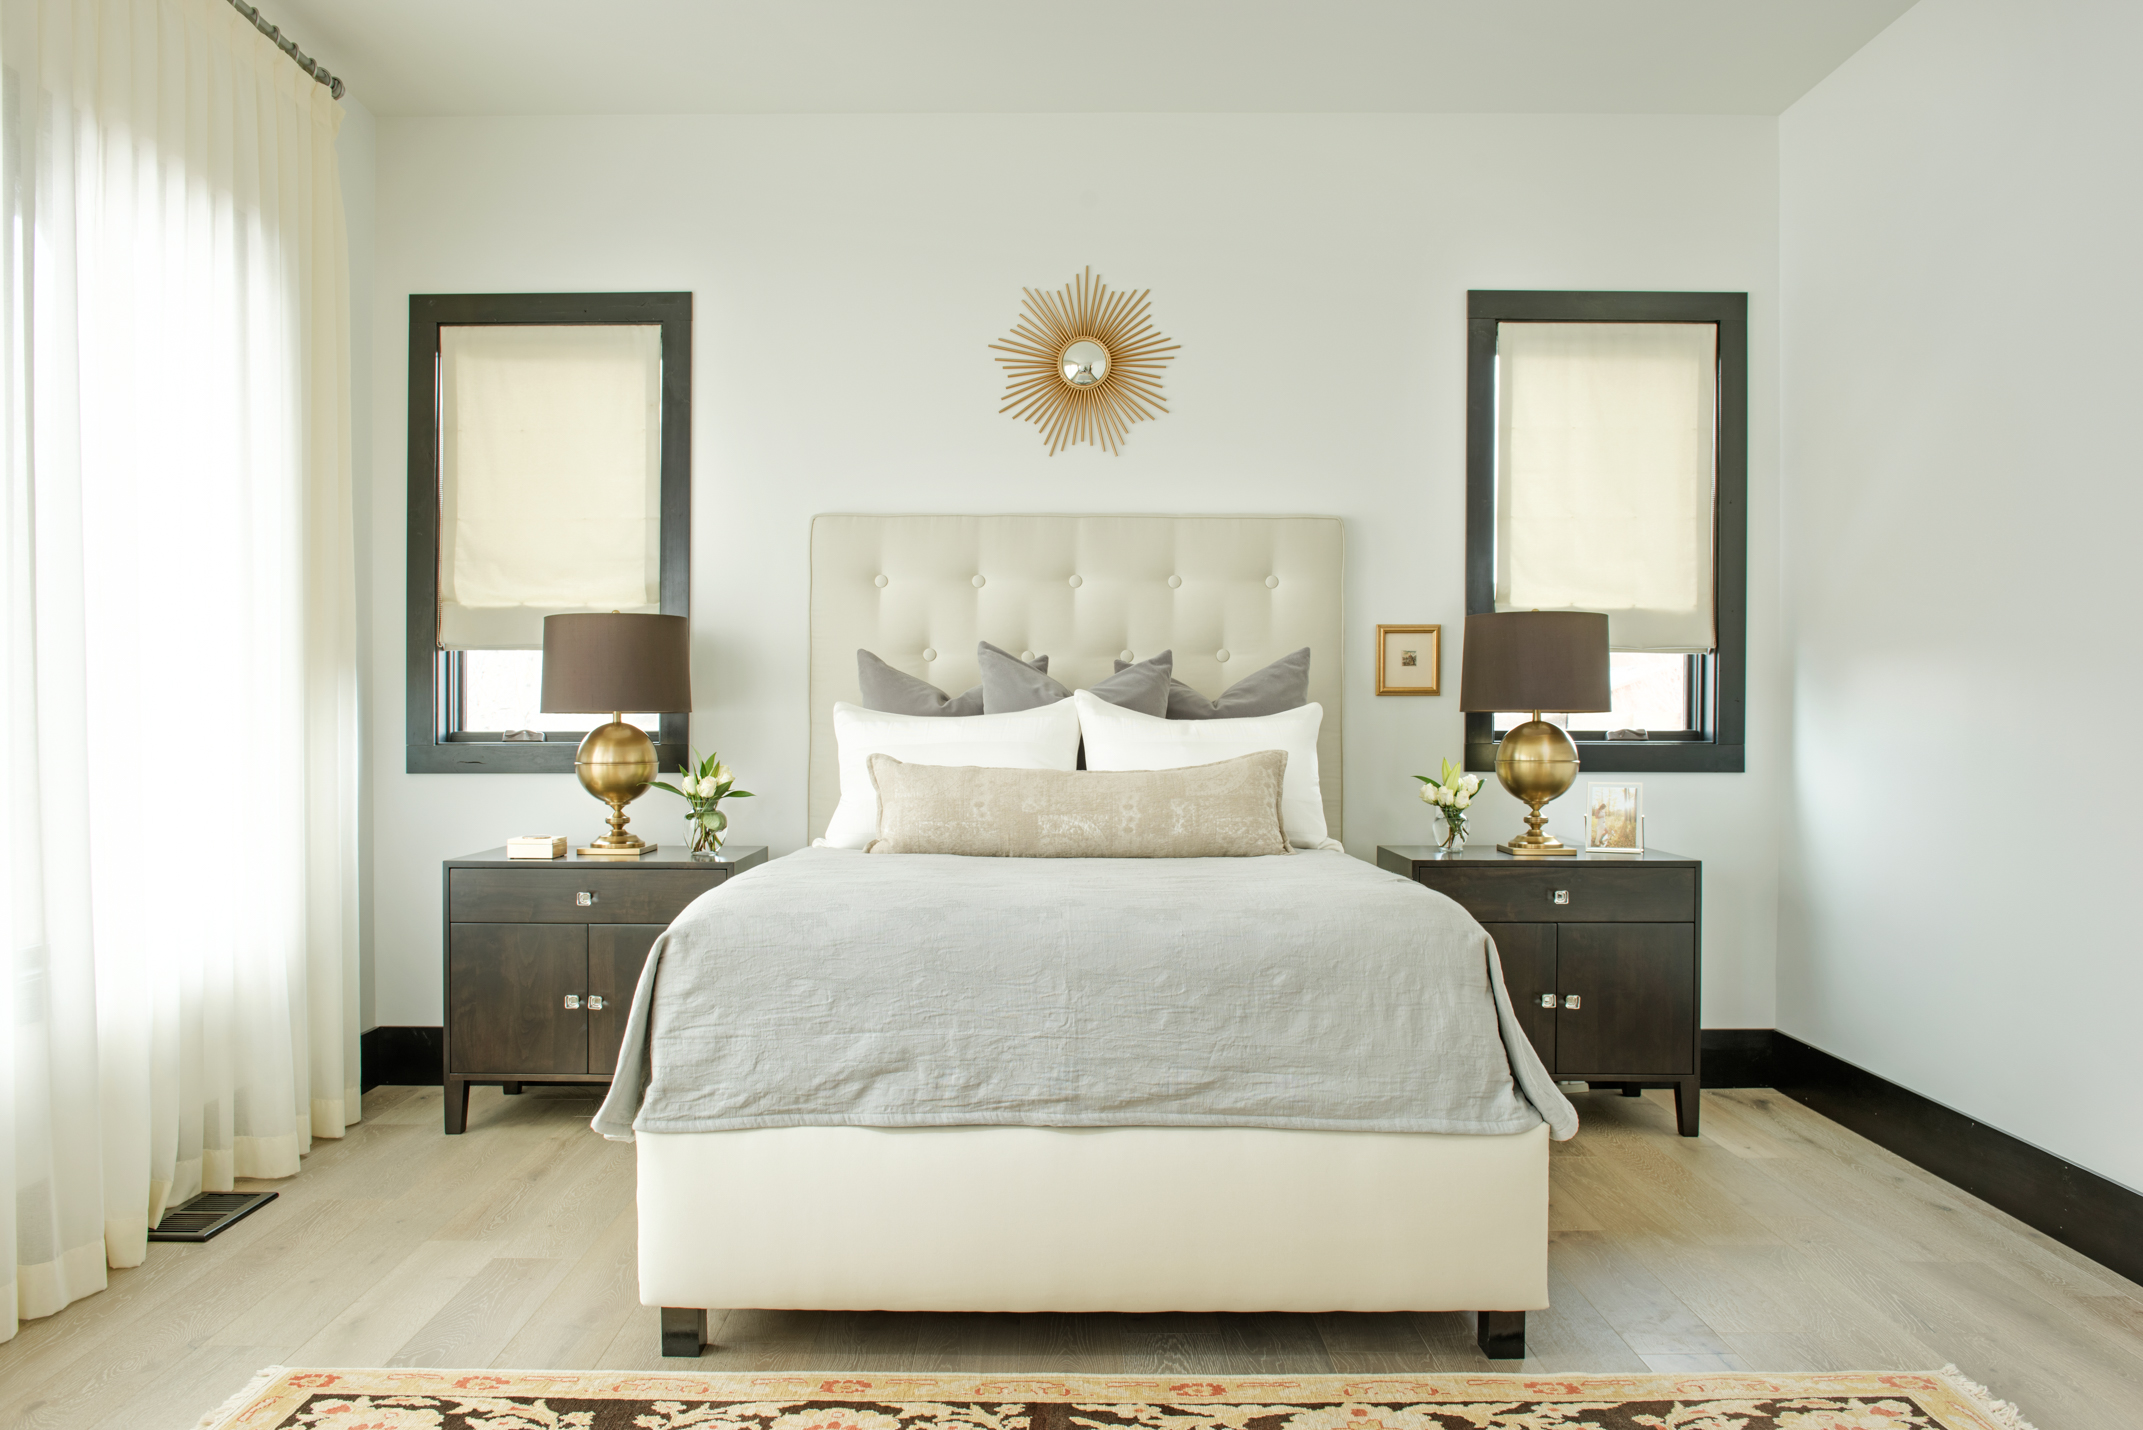 I love this master bedroom - so clean and airy feeling. The perfect place to relax after a long day!